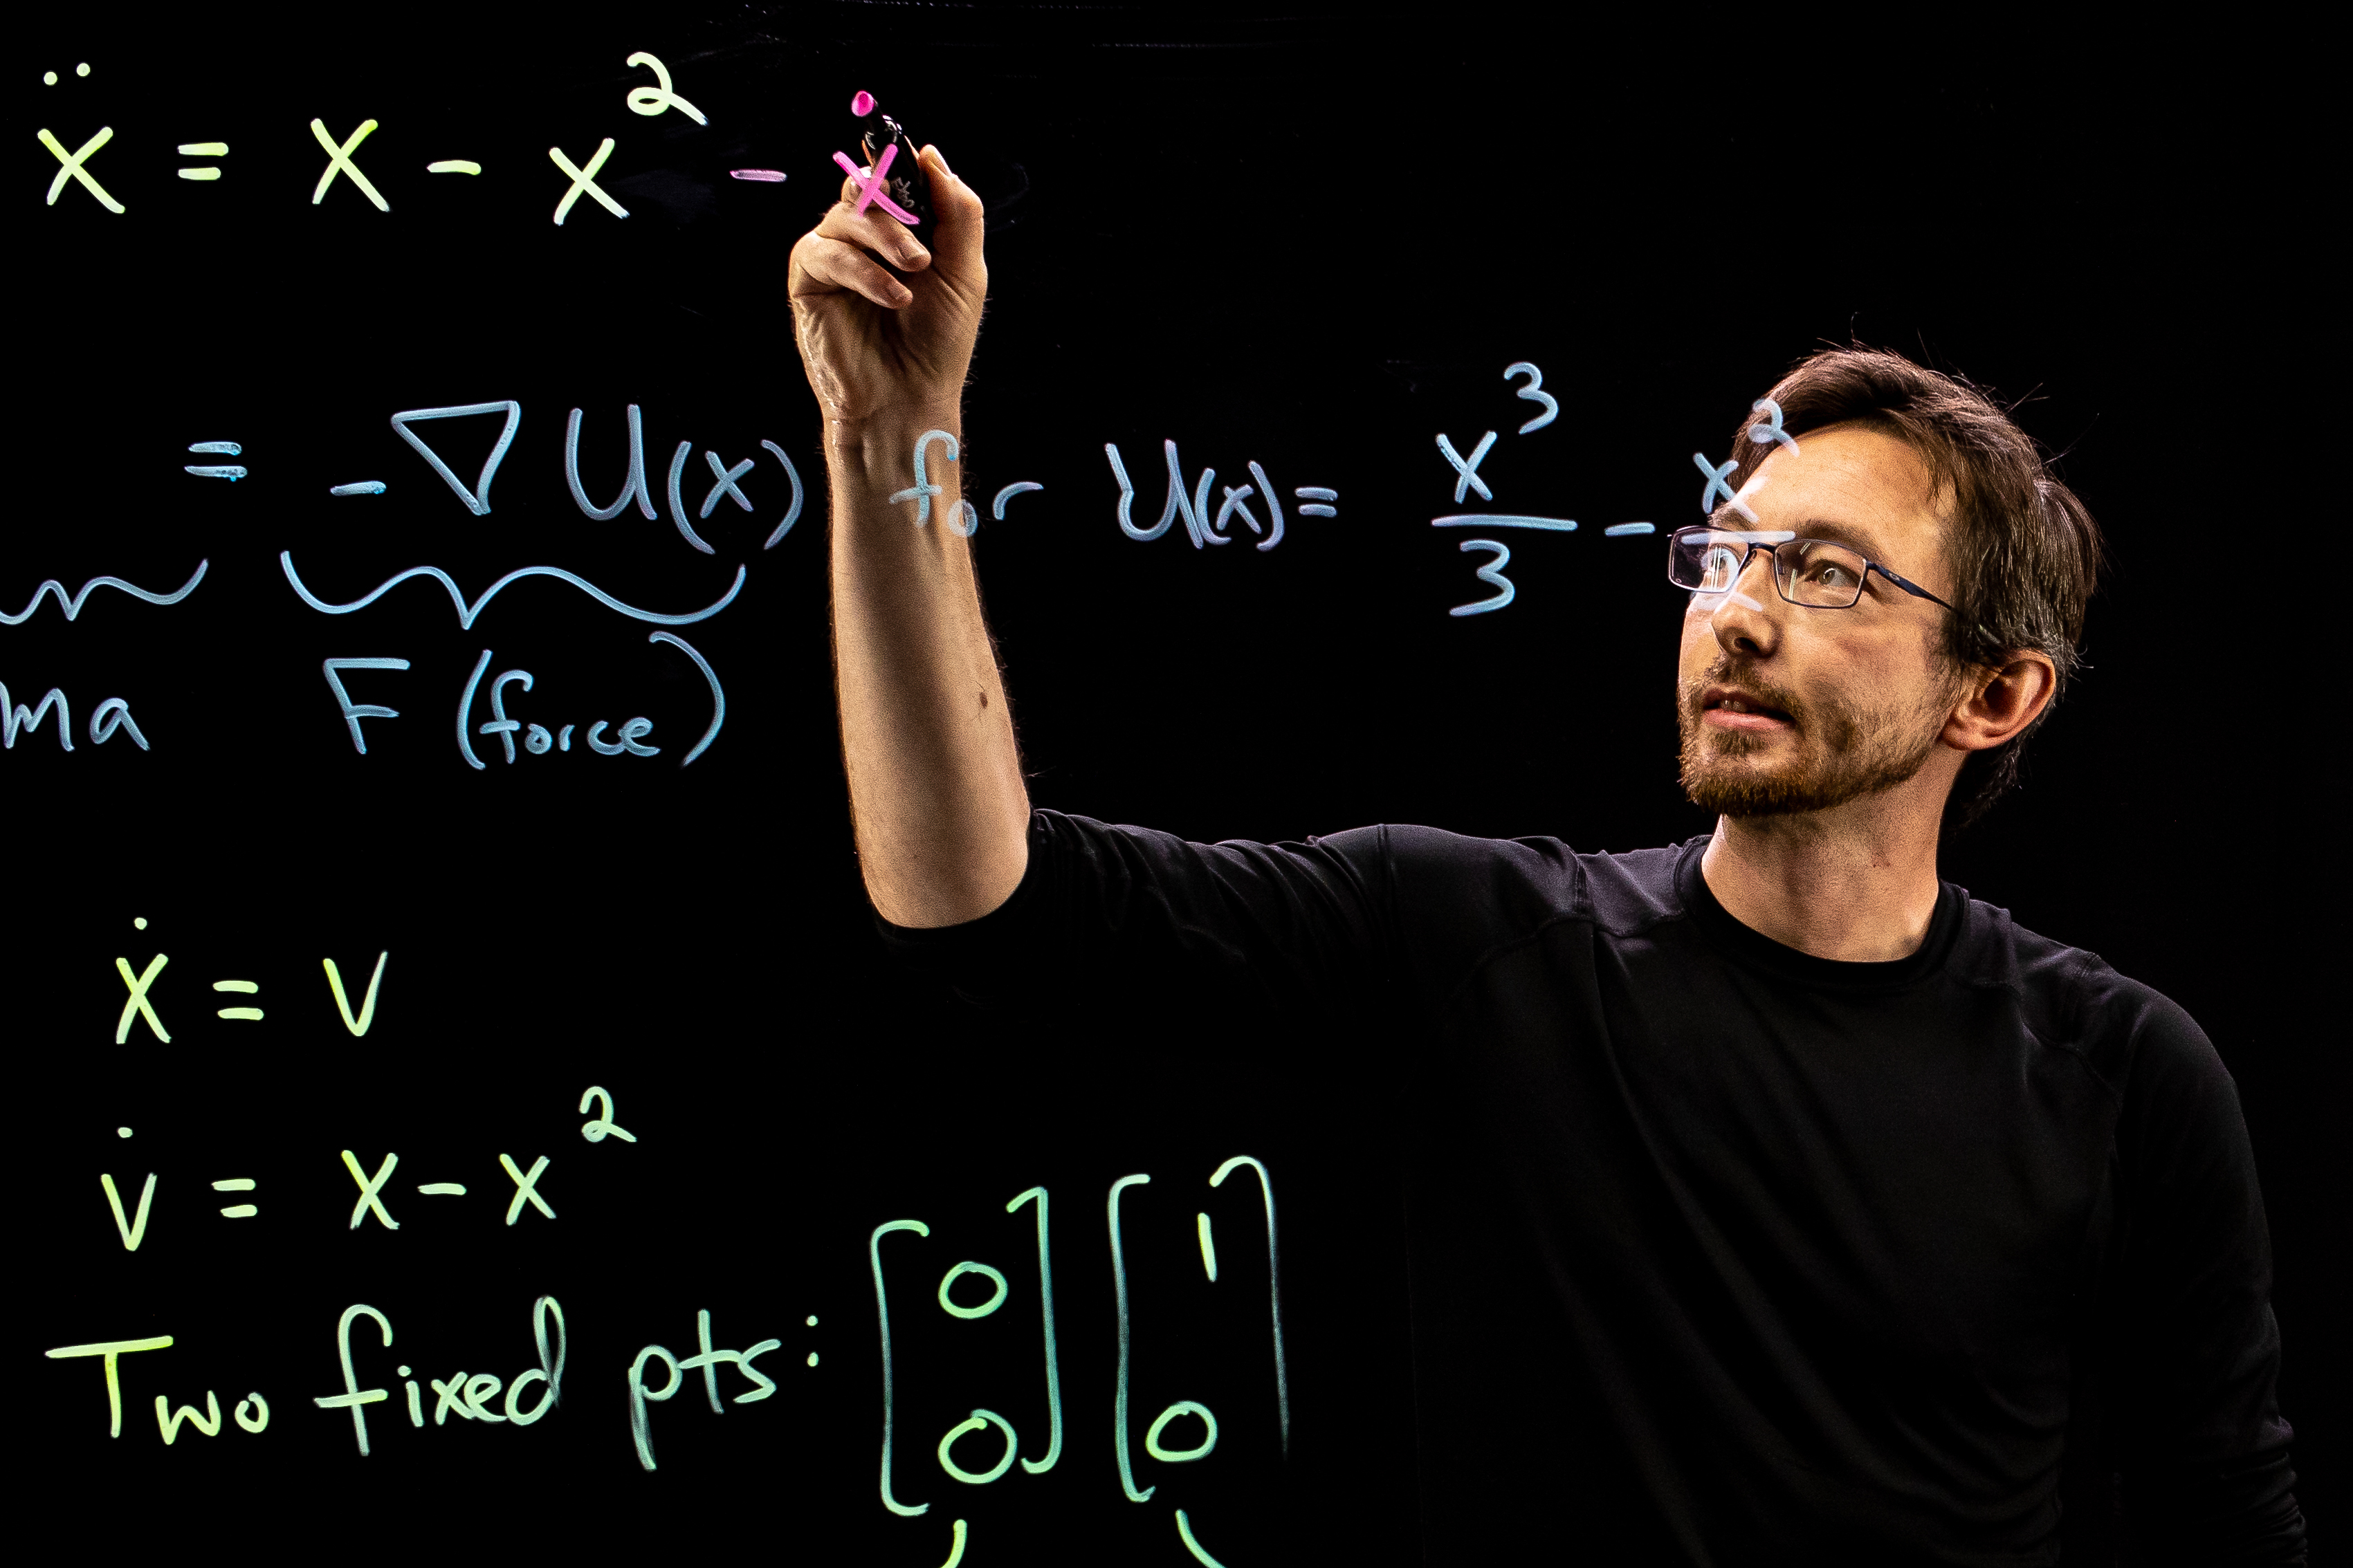 Do the math with Steve Brunton, a UW professor whose YouTube popularity keeps adding up